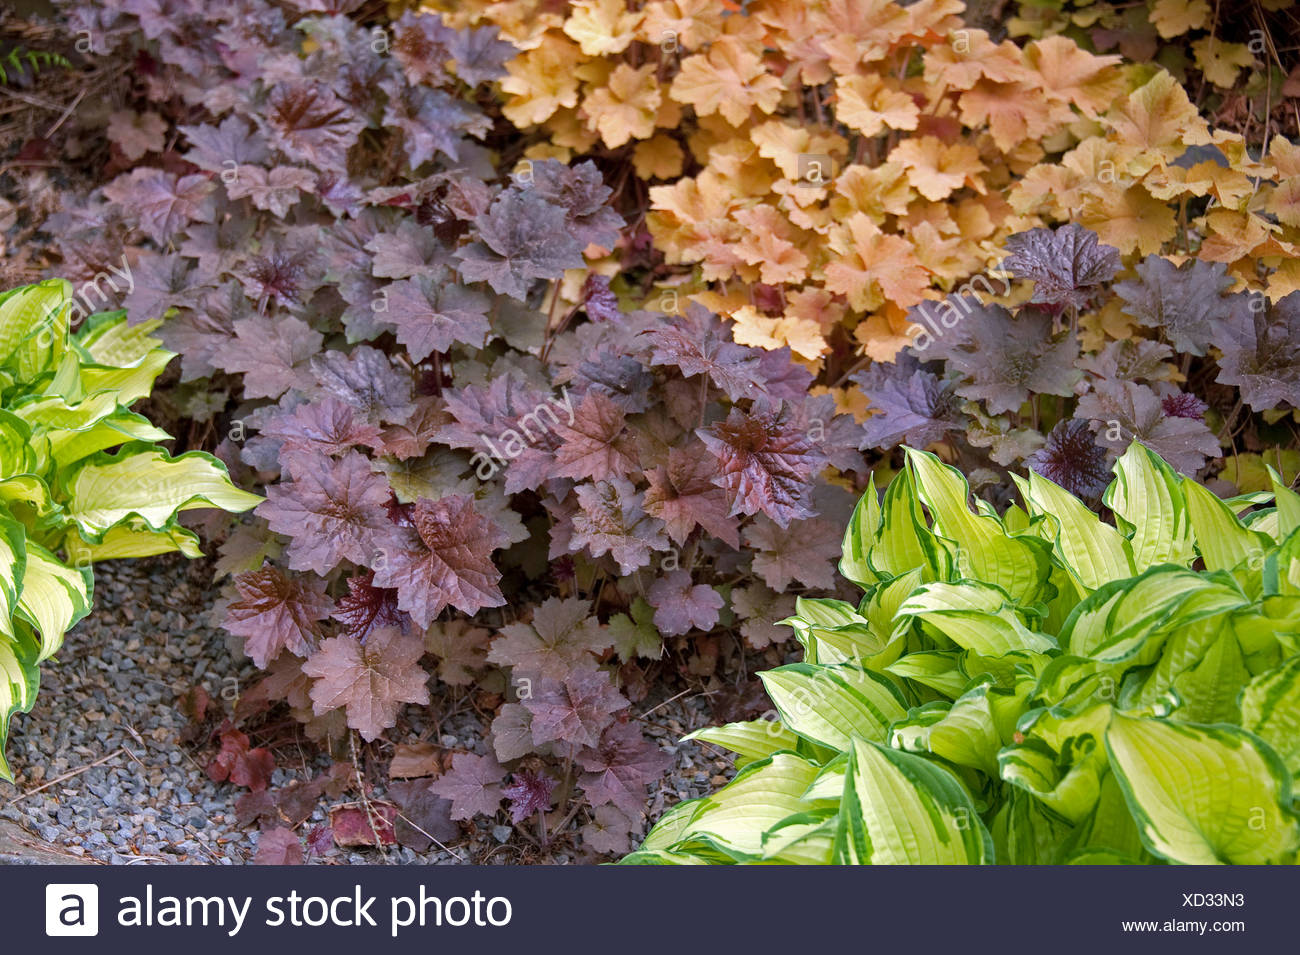 Heuchère (Heuchera 'Palace Purple', Heuchera Palace Purple), le cultivar Palace Purple Photo Stock